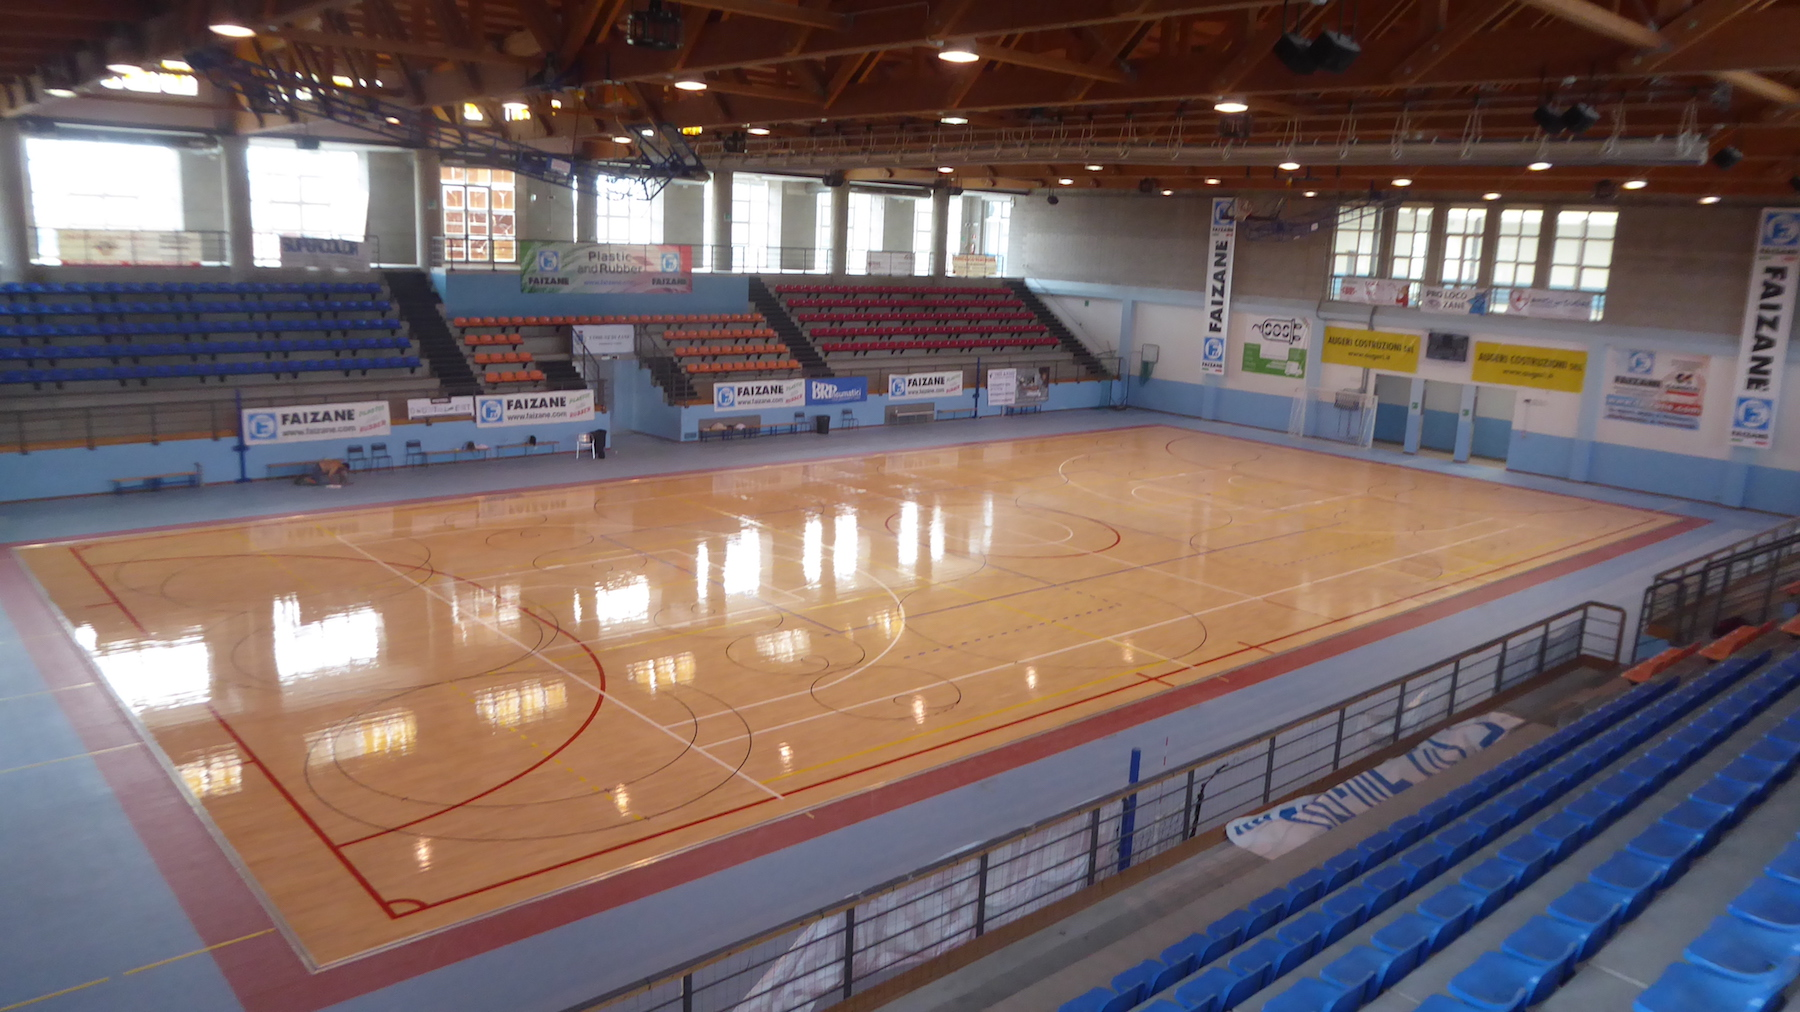 The sporting parquet of Vicenza has been restored